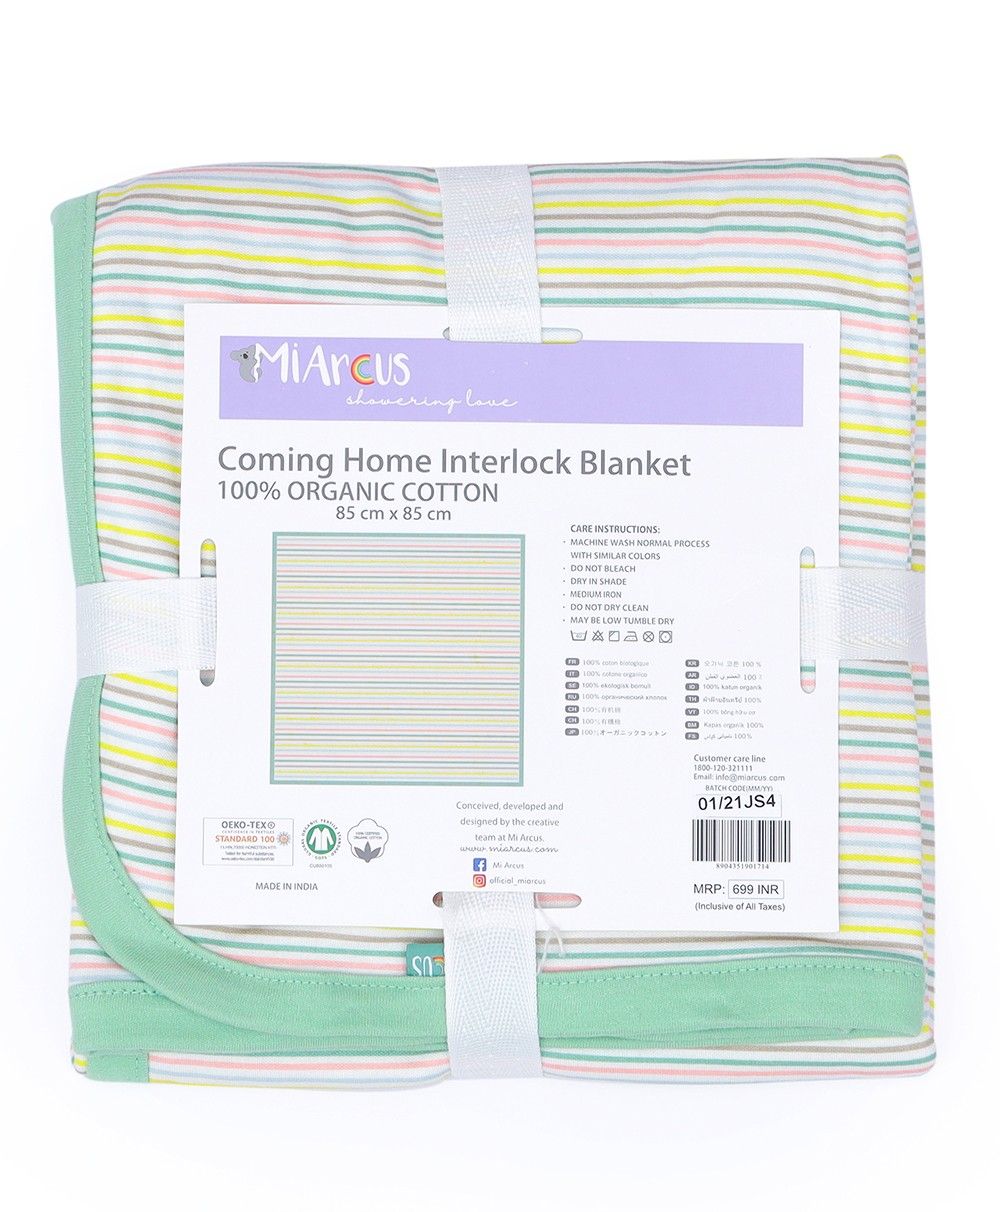 Coming Home Interlock Blanket - Arcus